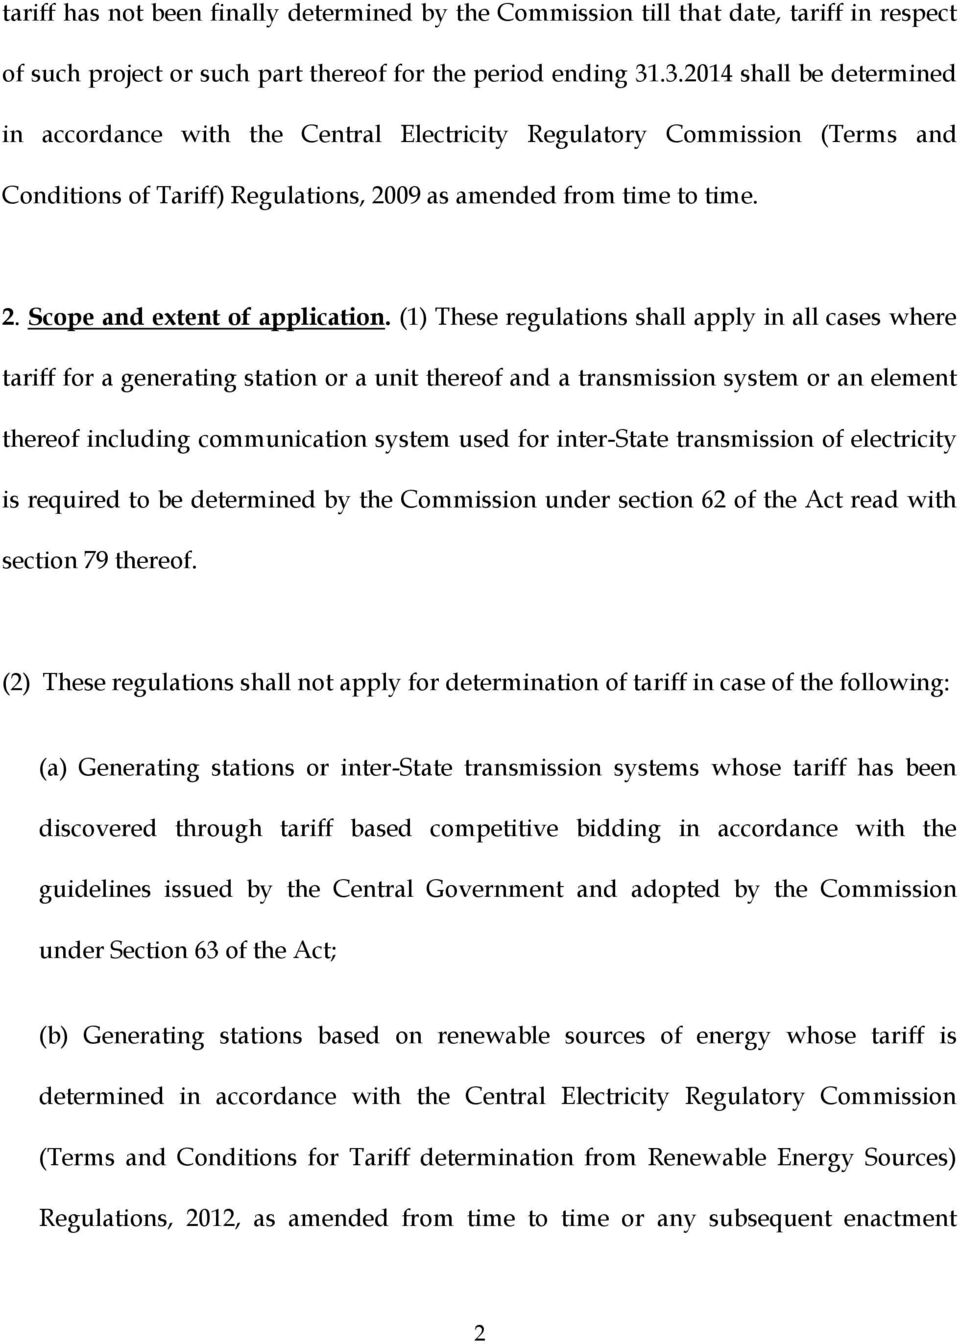 (1) These regulations shall apply in all cases where tariff for a generating station or a unit thereof and a transmission system or an element thereof including communication system used for